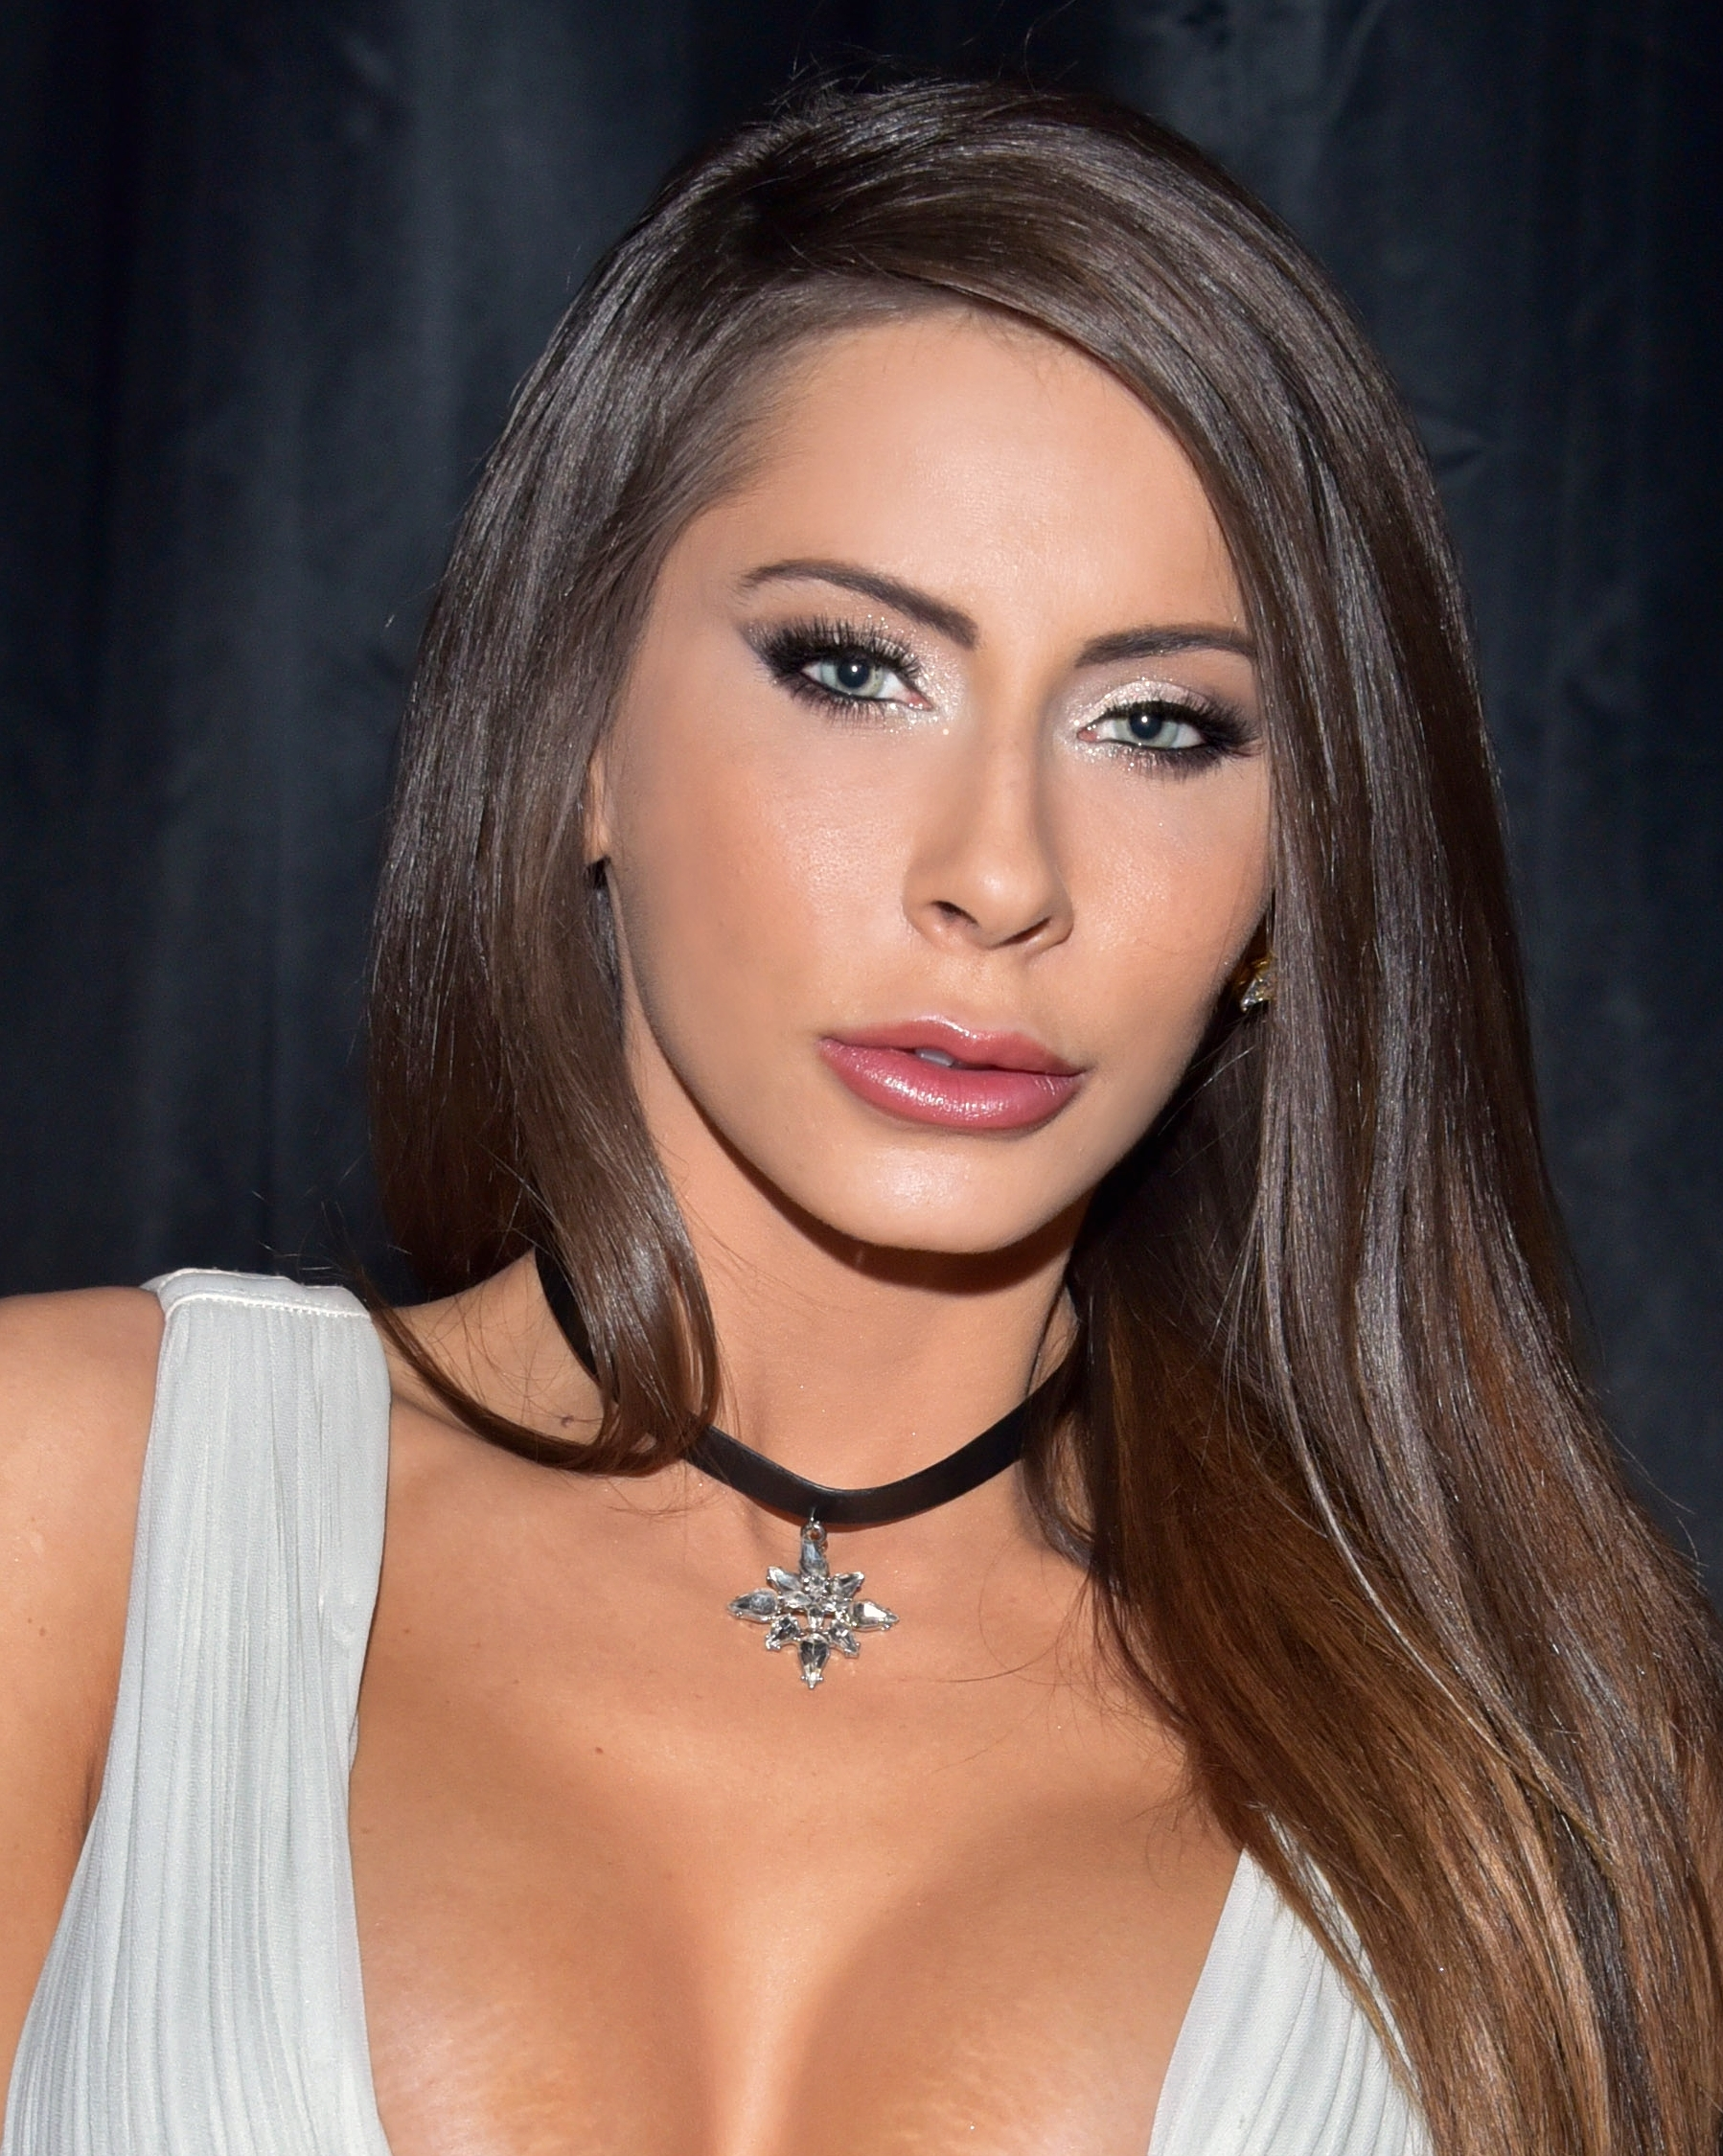 Madison Ivy Pictures